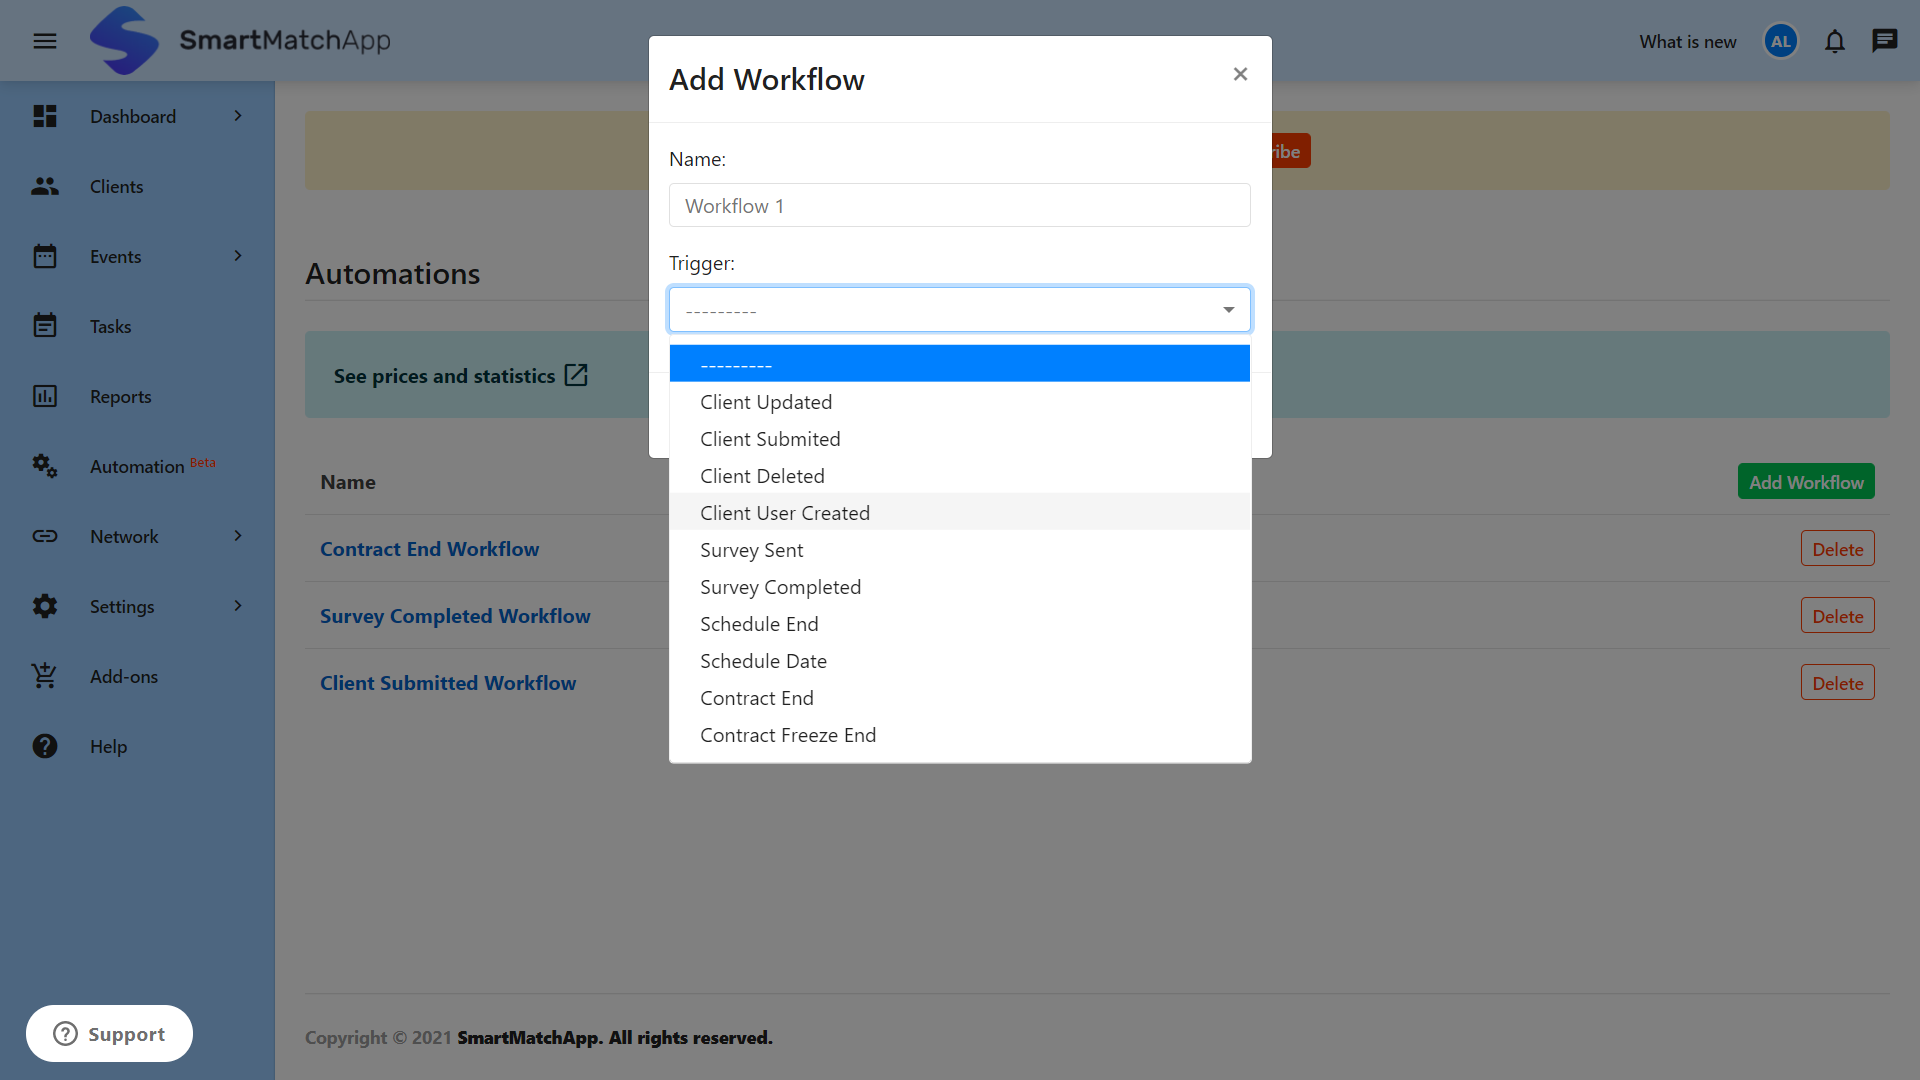 Adding a workflow to your smart automation screenshot